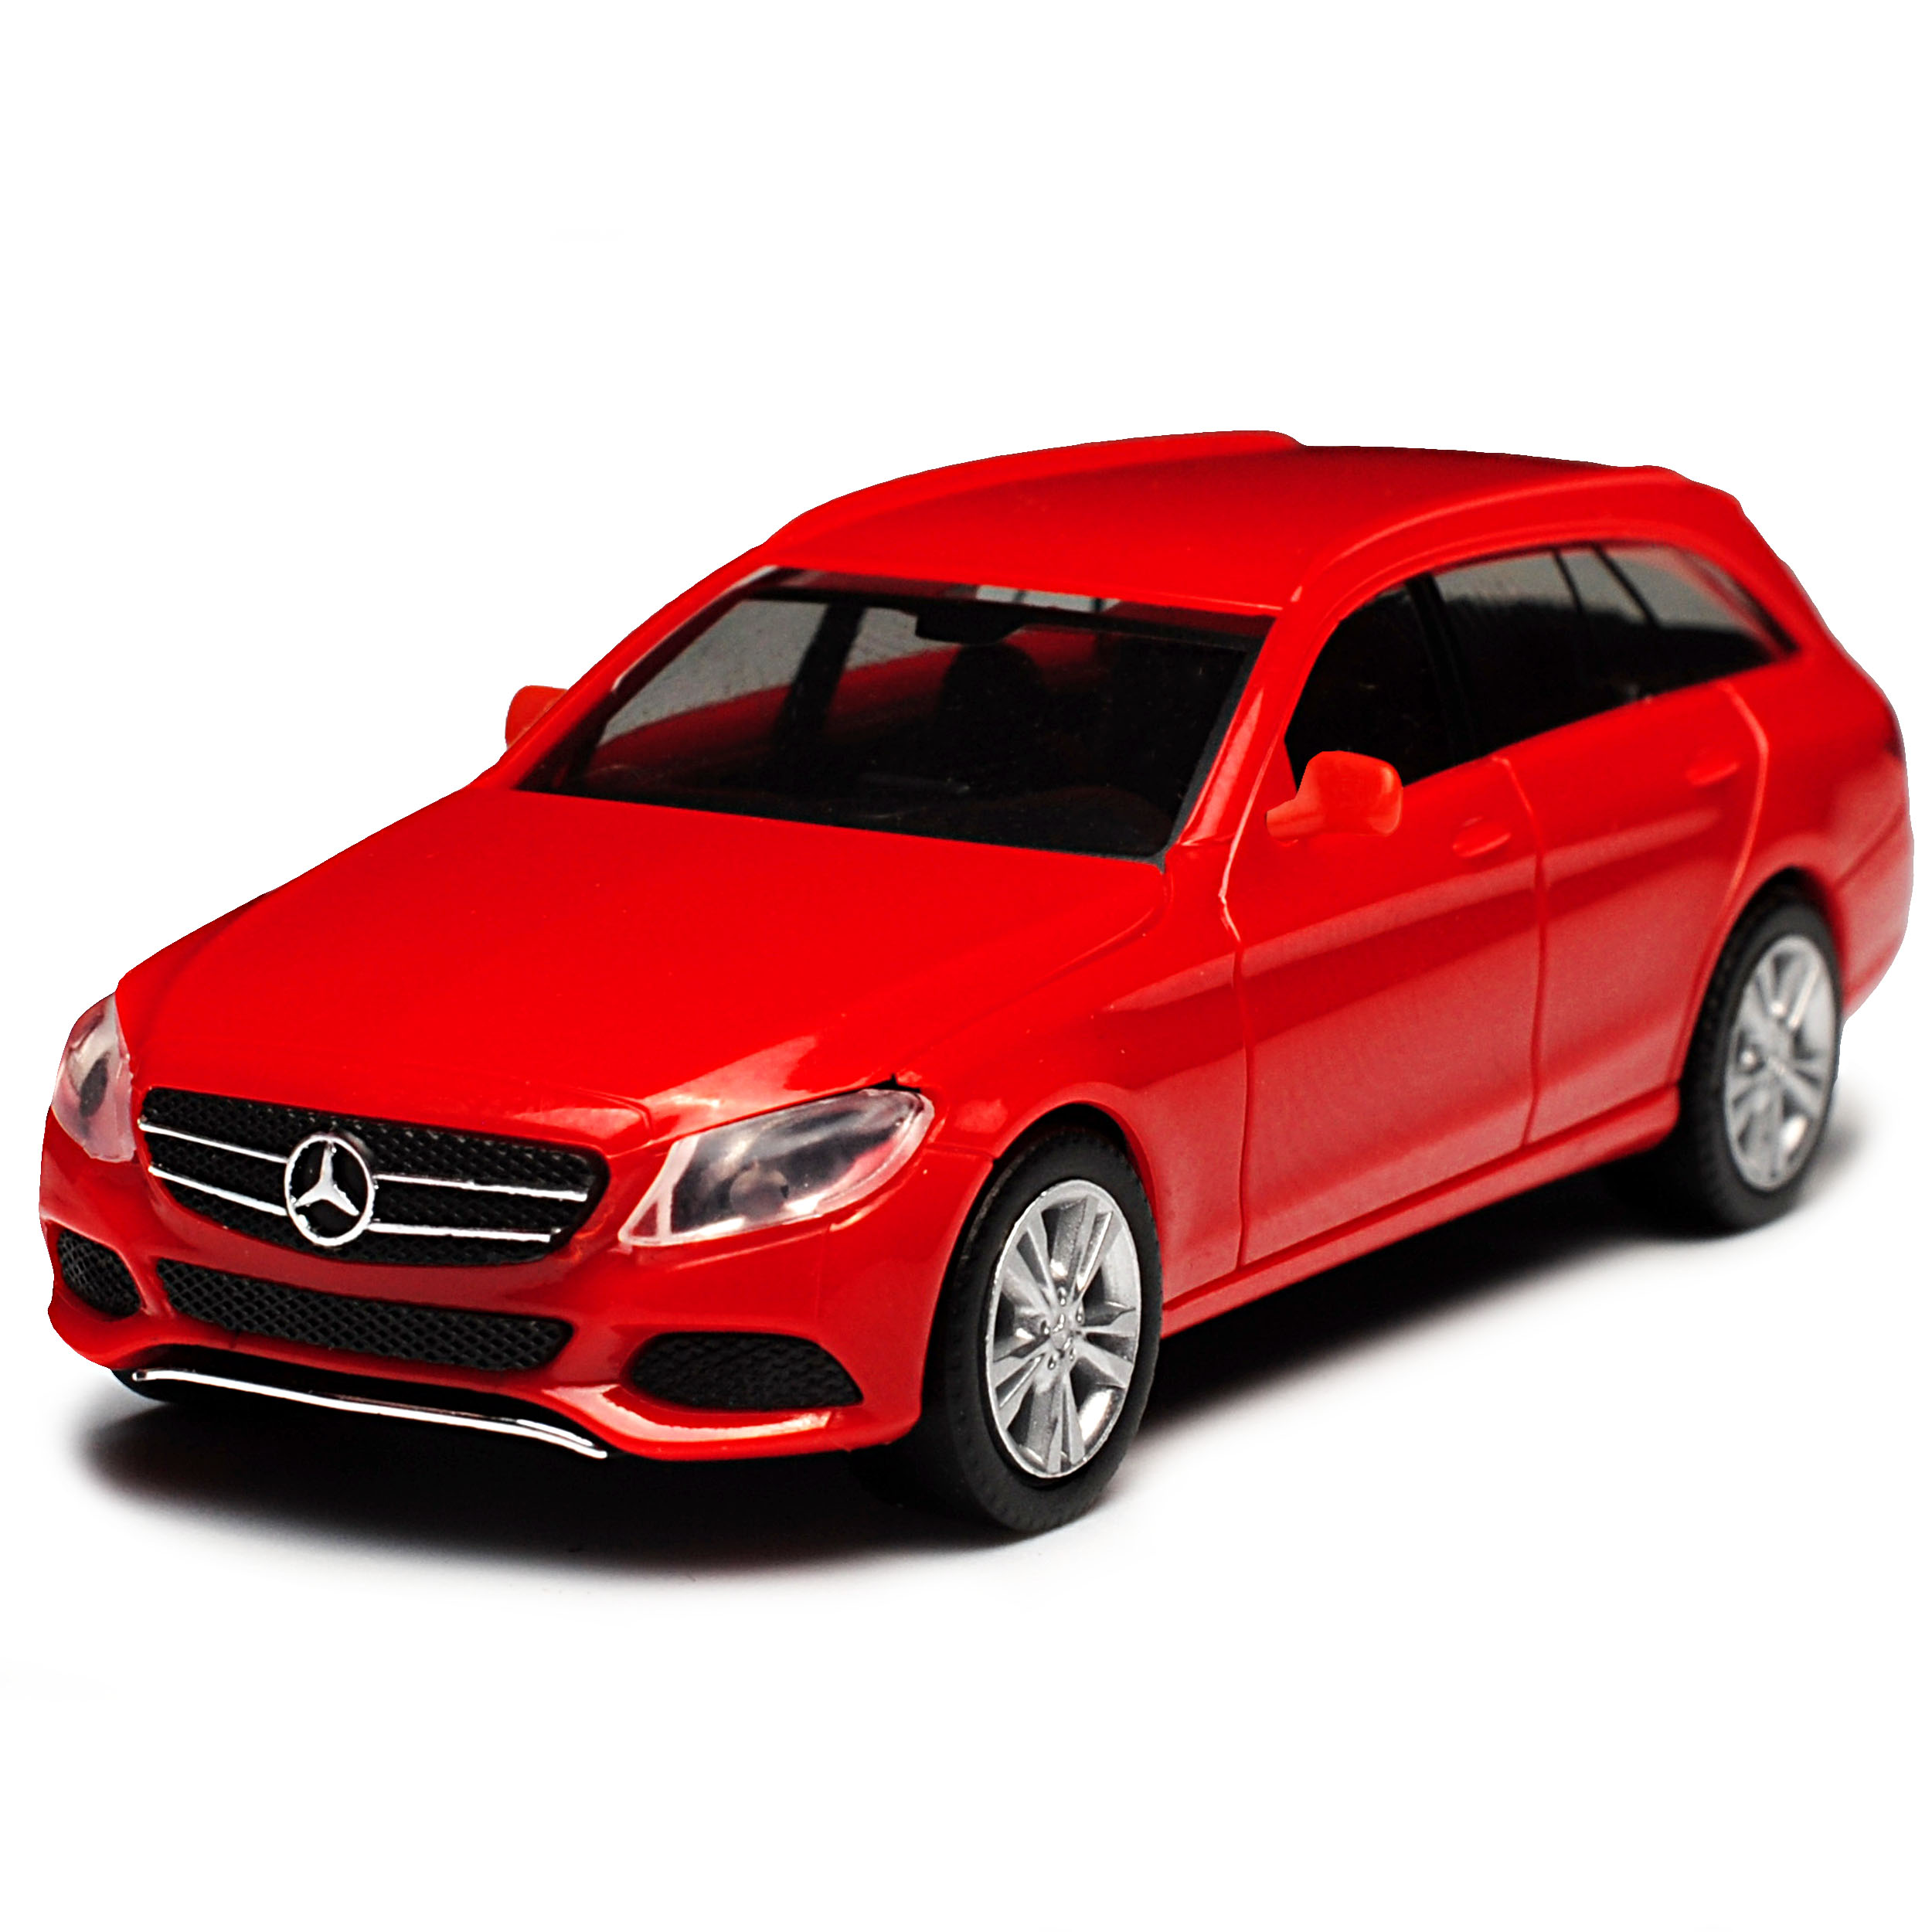 Mercedes-Benz-Classe-C-Modele-T-W205-Break-Rouge-Ab-2014-Kit-Kit-avec-Socle miniature 4